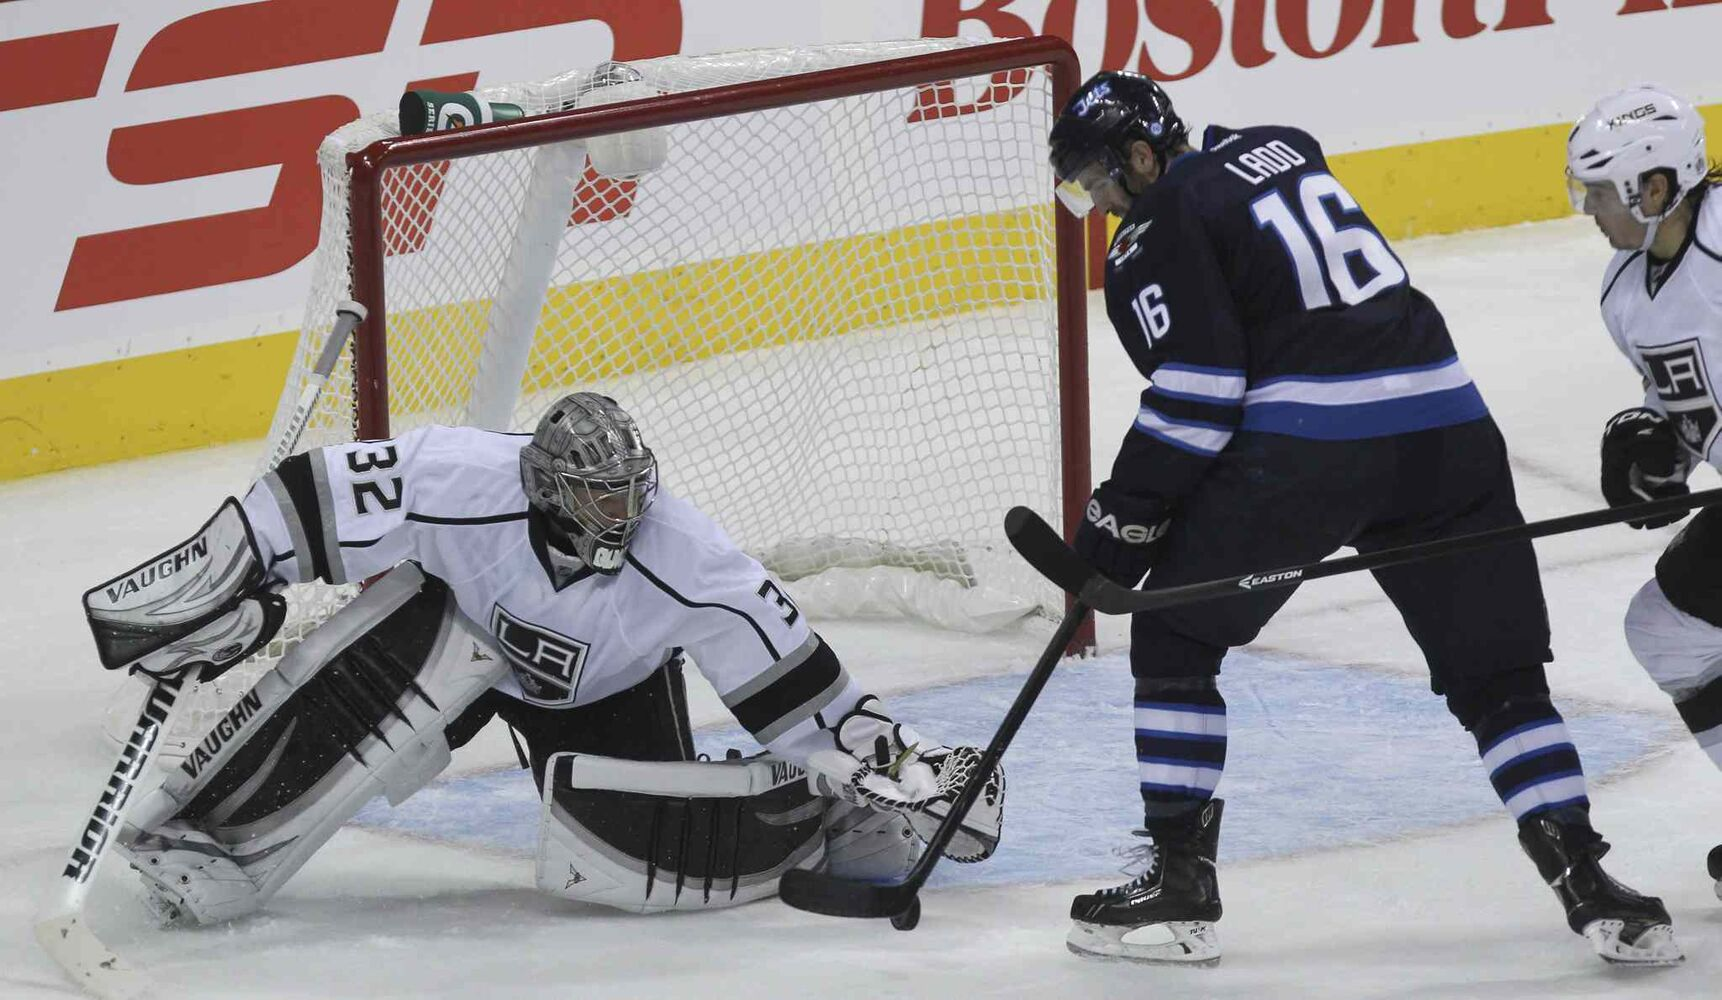 Winnipeg Jets' Andrew Ladd (16) tries to stuff the puck past Los Angeles Kings' goaltender Jonathan Quick (32) in the second period. (MIKE DEAL / WINNIPEG FREE PRESS)